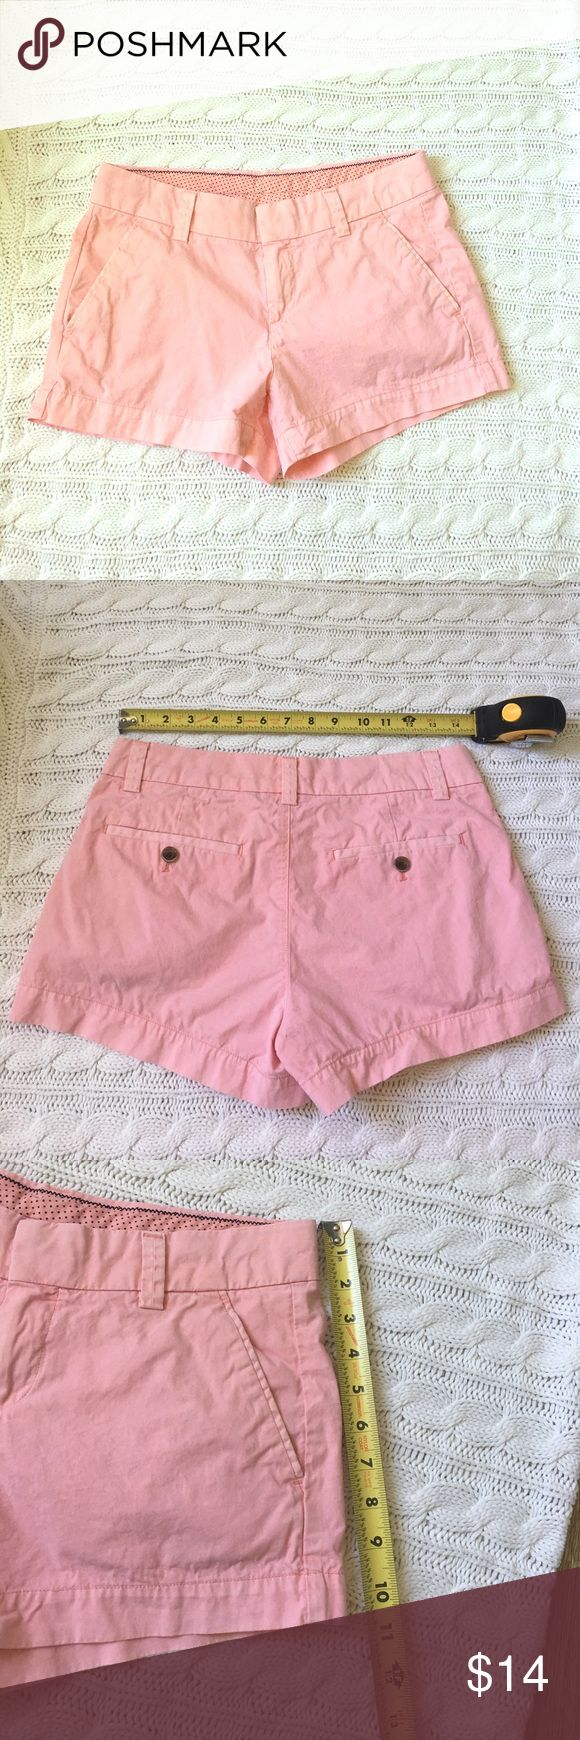 Uniqlo light pink preppy trouser shorts size 4 100% cotton Uniqlo micro trouser shorts size 4 with navy polka dot waist band trim. Only worn once and laundered. Super soft and well made. Fits more like a size 2/4 Uniqlo Shorts